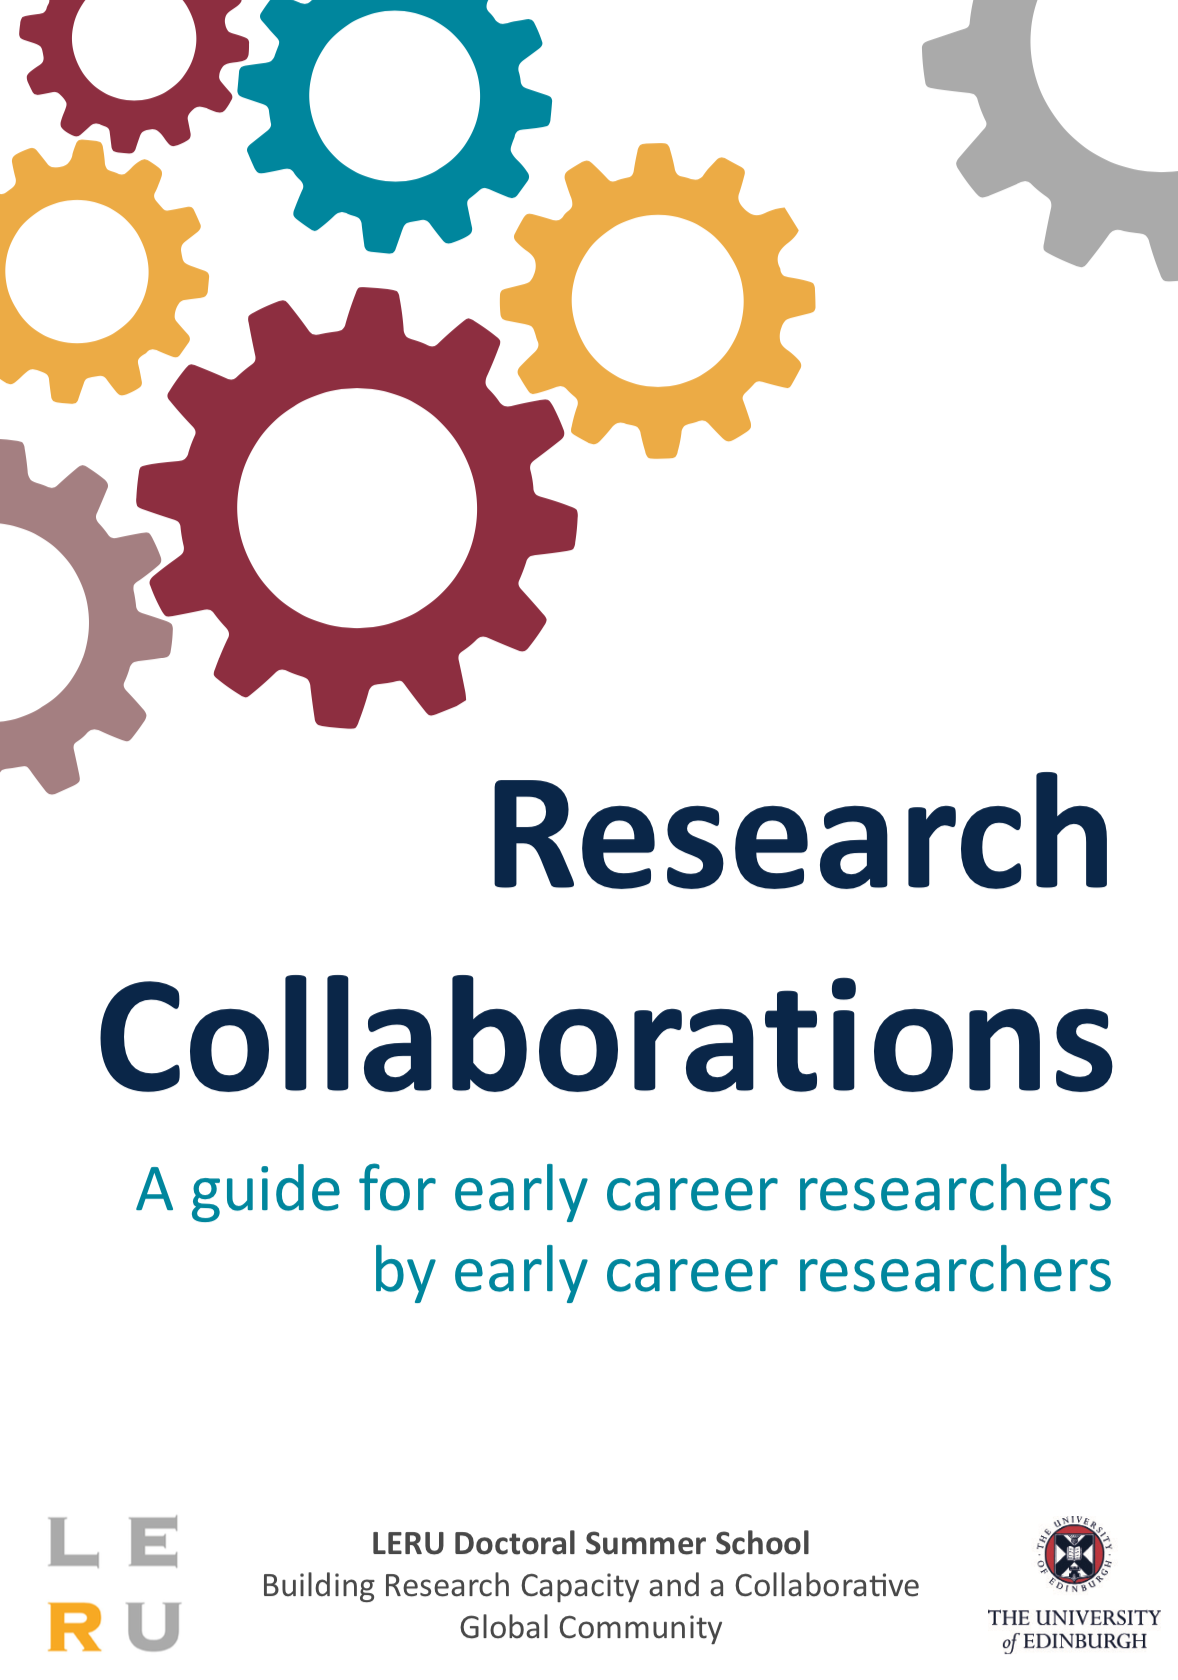 Guide book on Research Collaborations LERU Summer School 2019